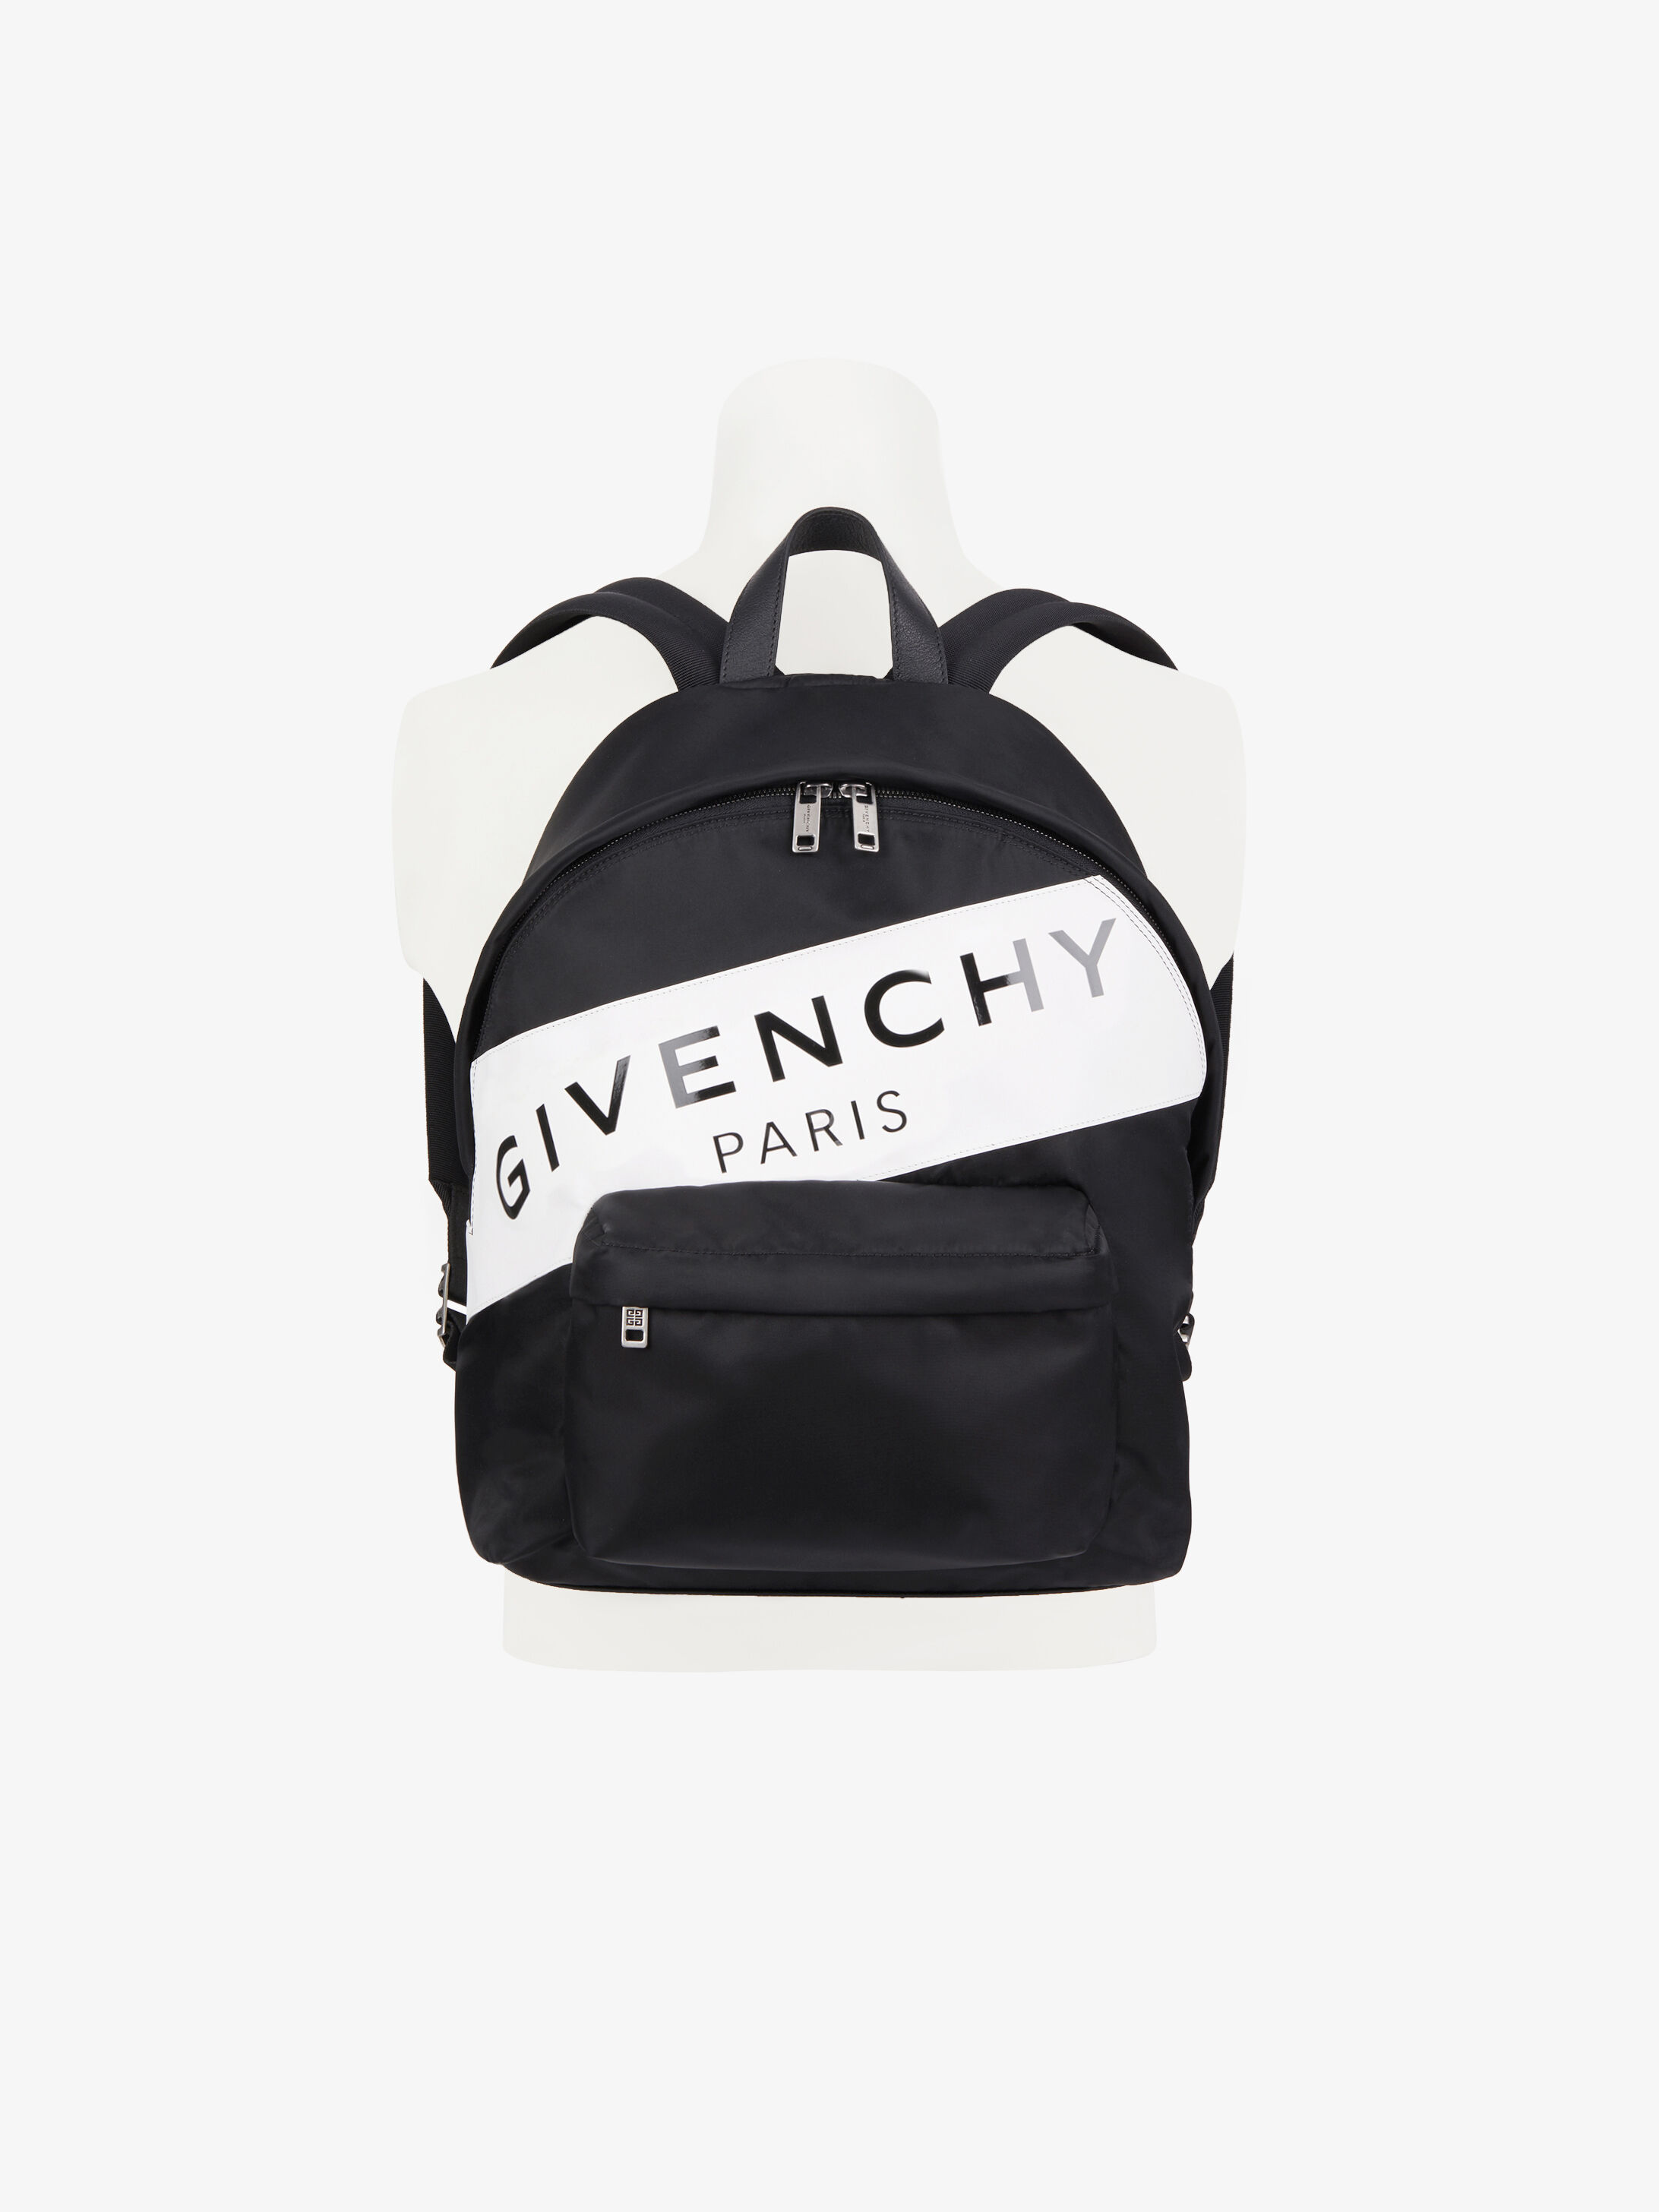 87b1c1267e9 La collection Sac à dos Homme par Givenchy.